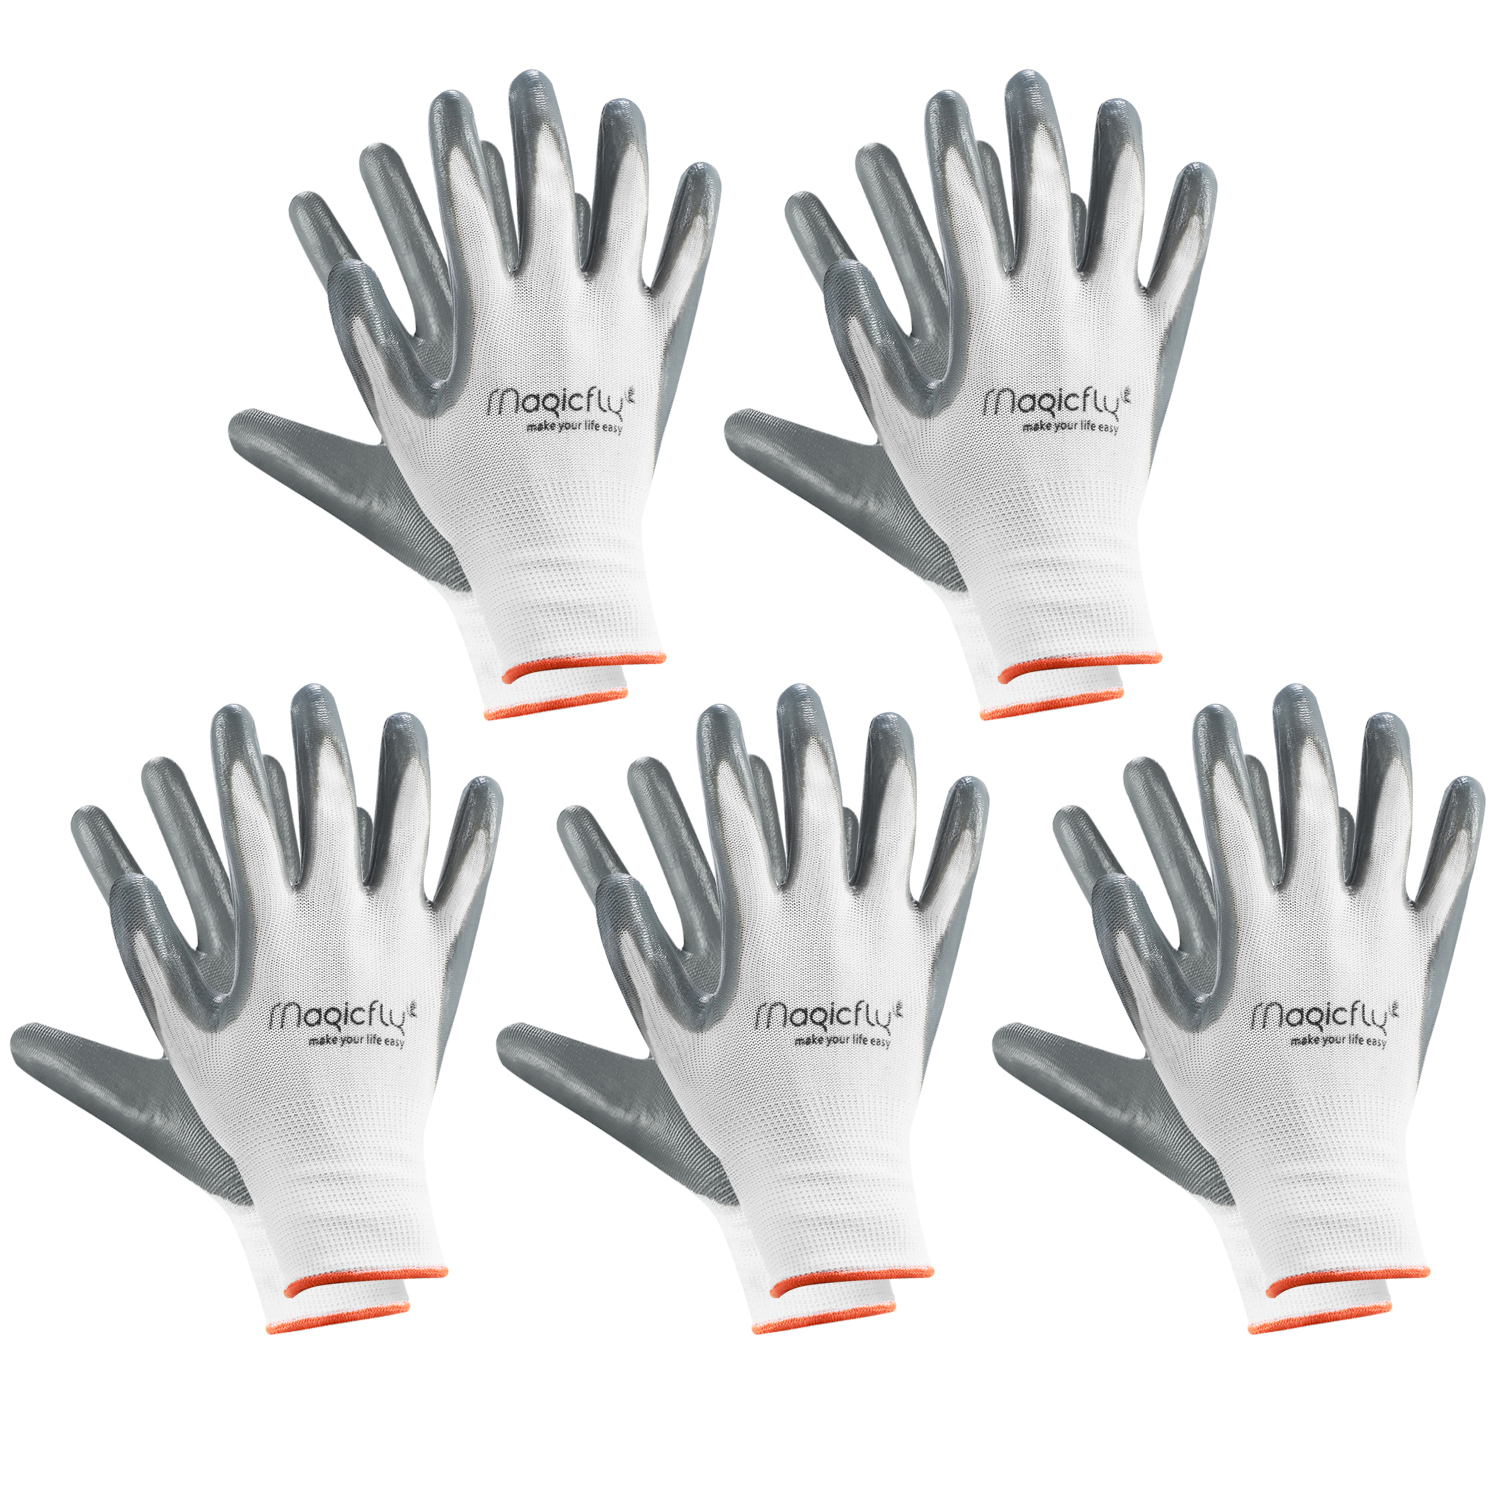 Magicfly 5 Pairs Nylon Nitrile Garden Gloves Waterproof Gardening Glove Fits Women and Men for Rose Pruning Heavy Duty